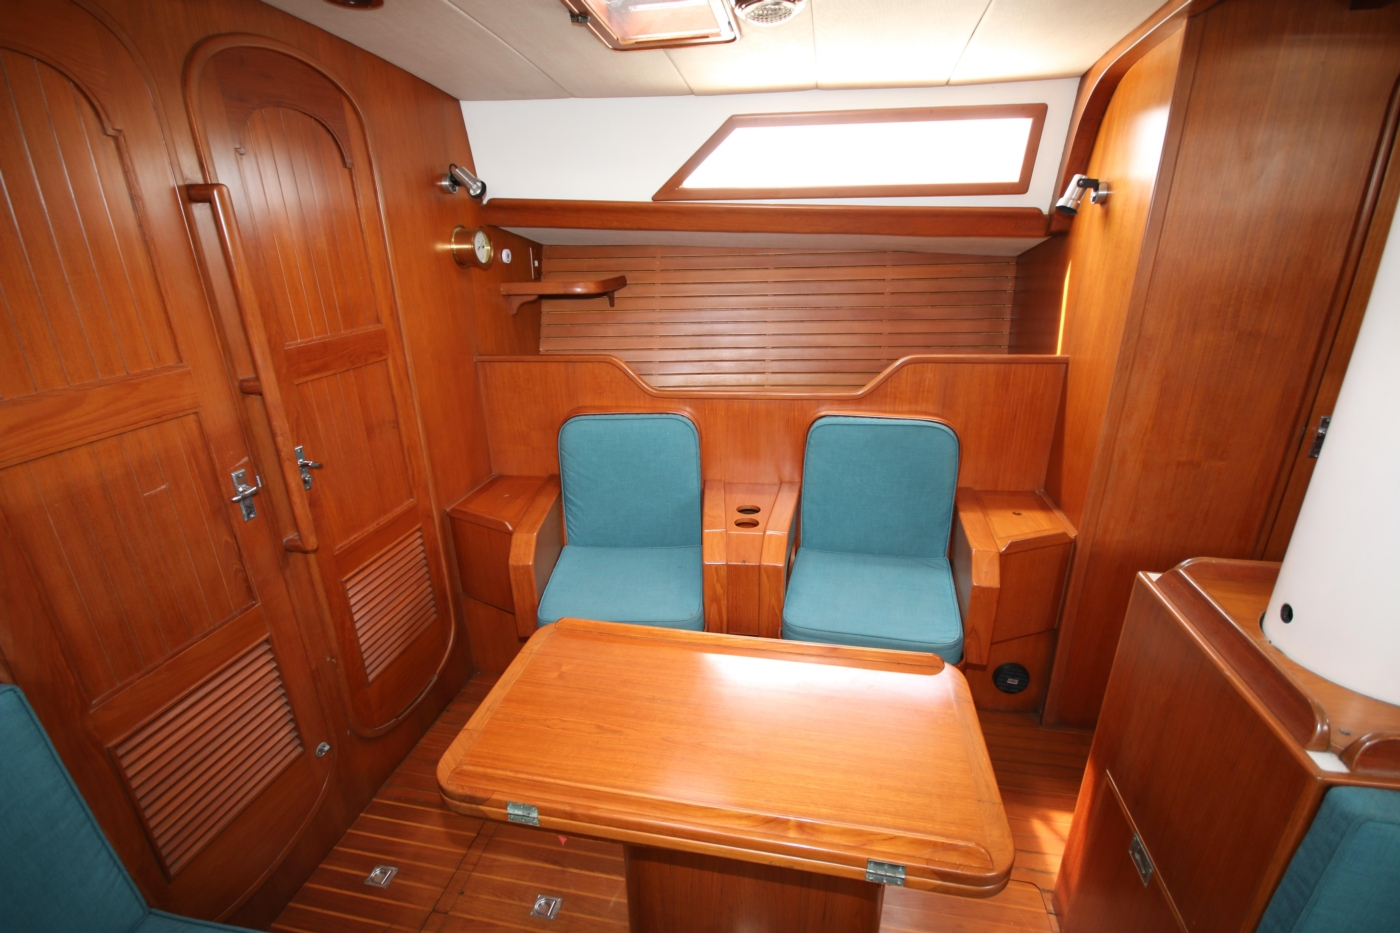 1996 Tanton 45 Offshore, Starboard chairs